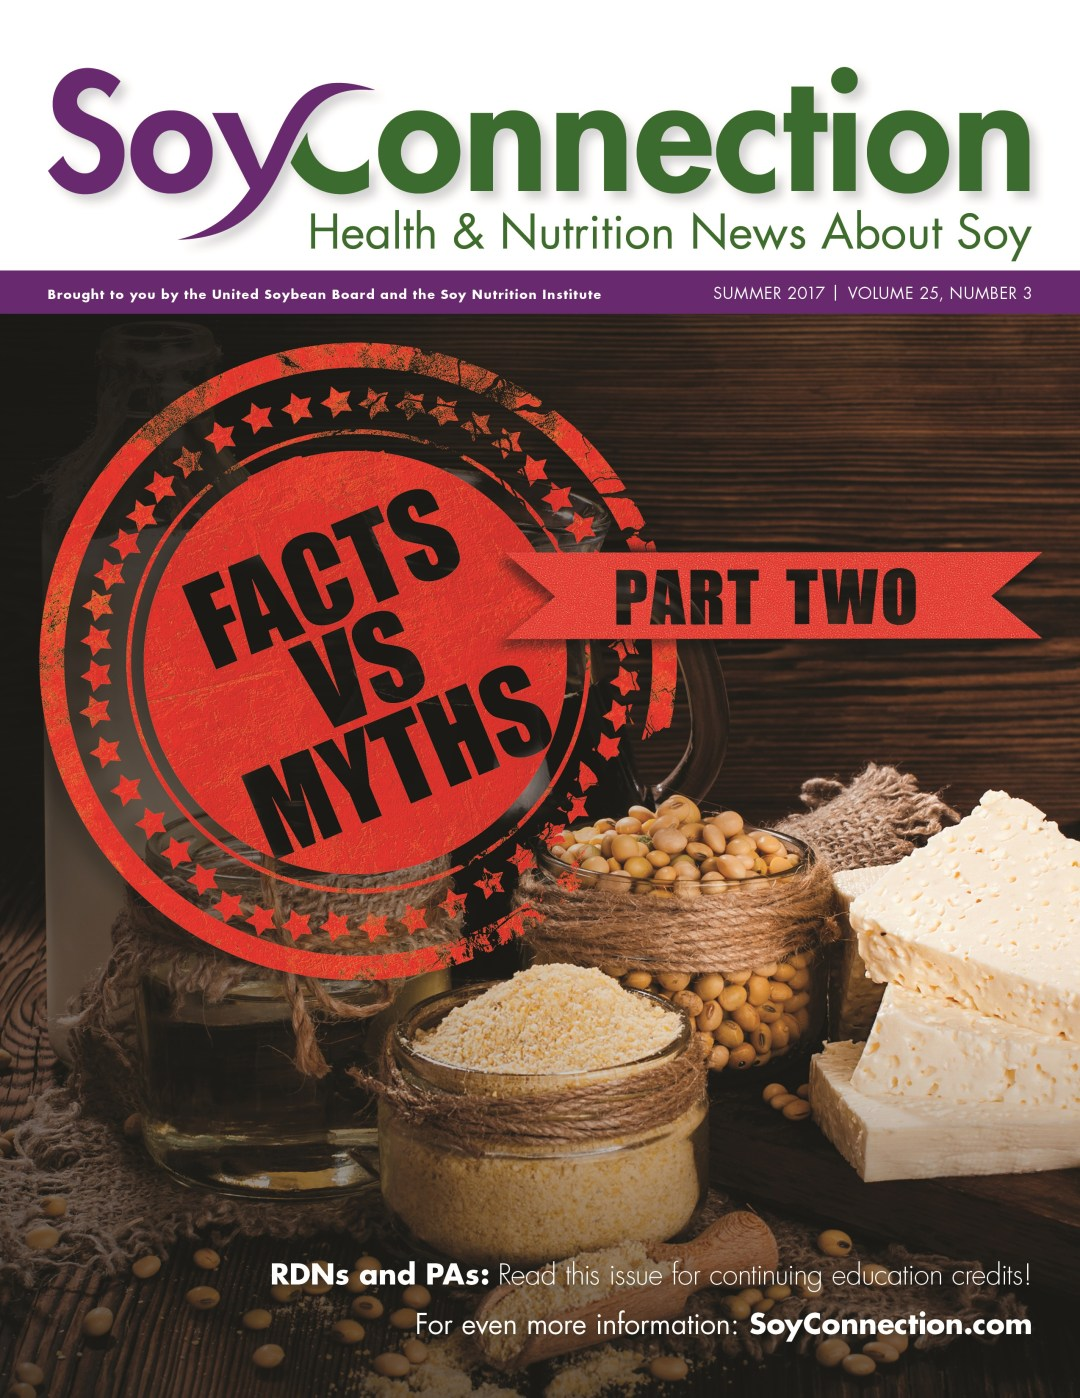 Soy Connection Myths vs. Facts Part Two